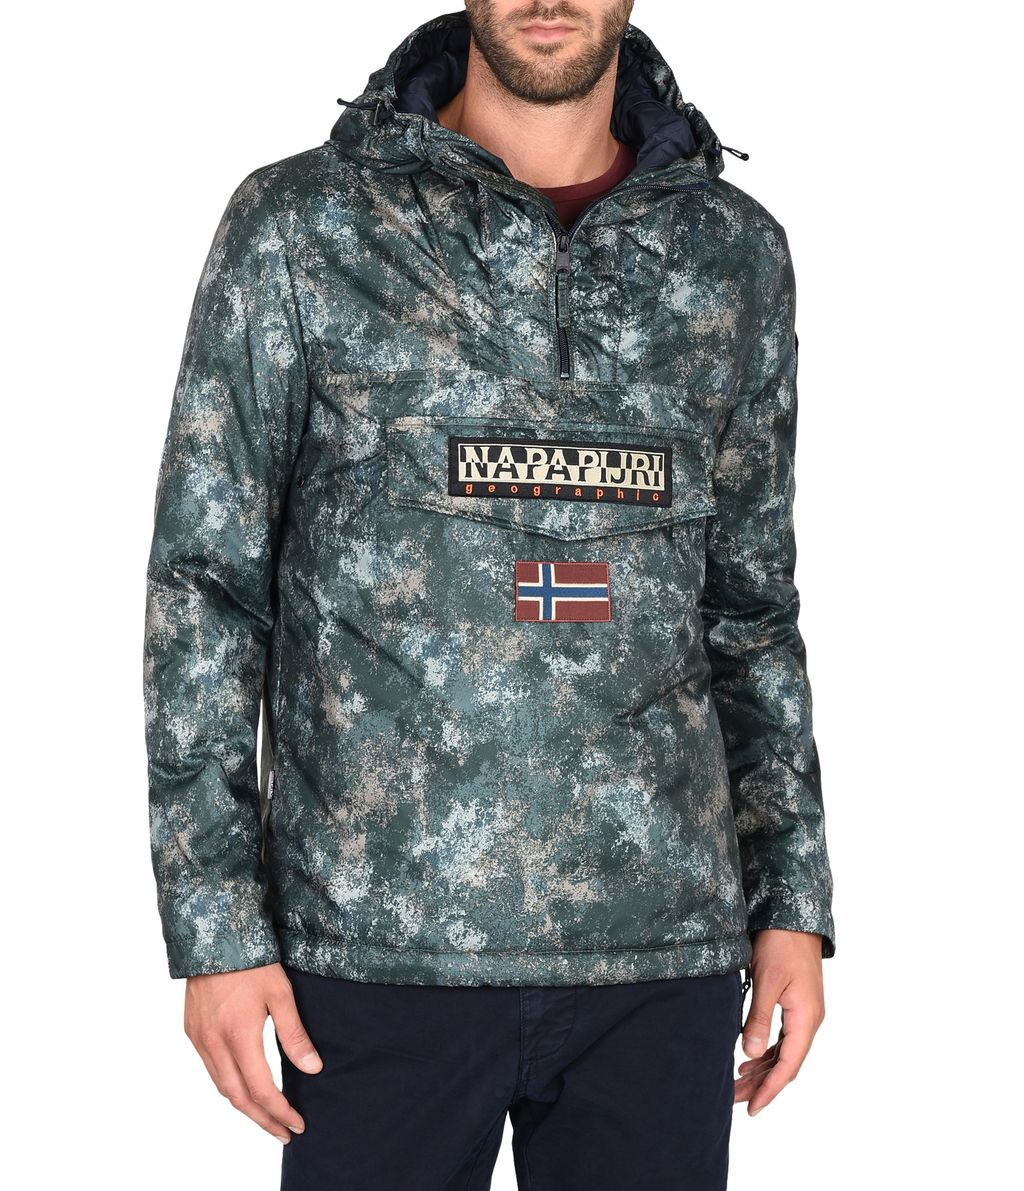 NAPAPIJRI RAINFOREST EXCLUSIVE MAN RAINFOREST,VERT MILITAIRE